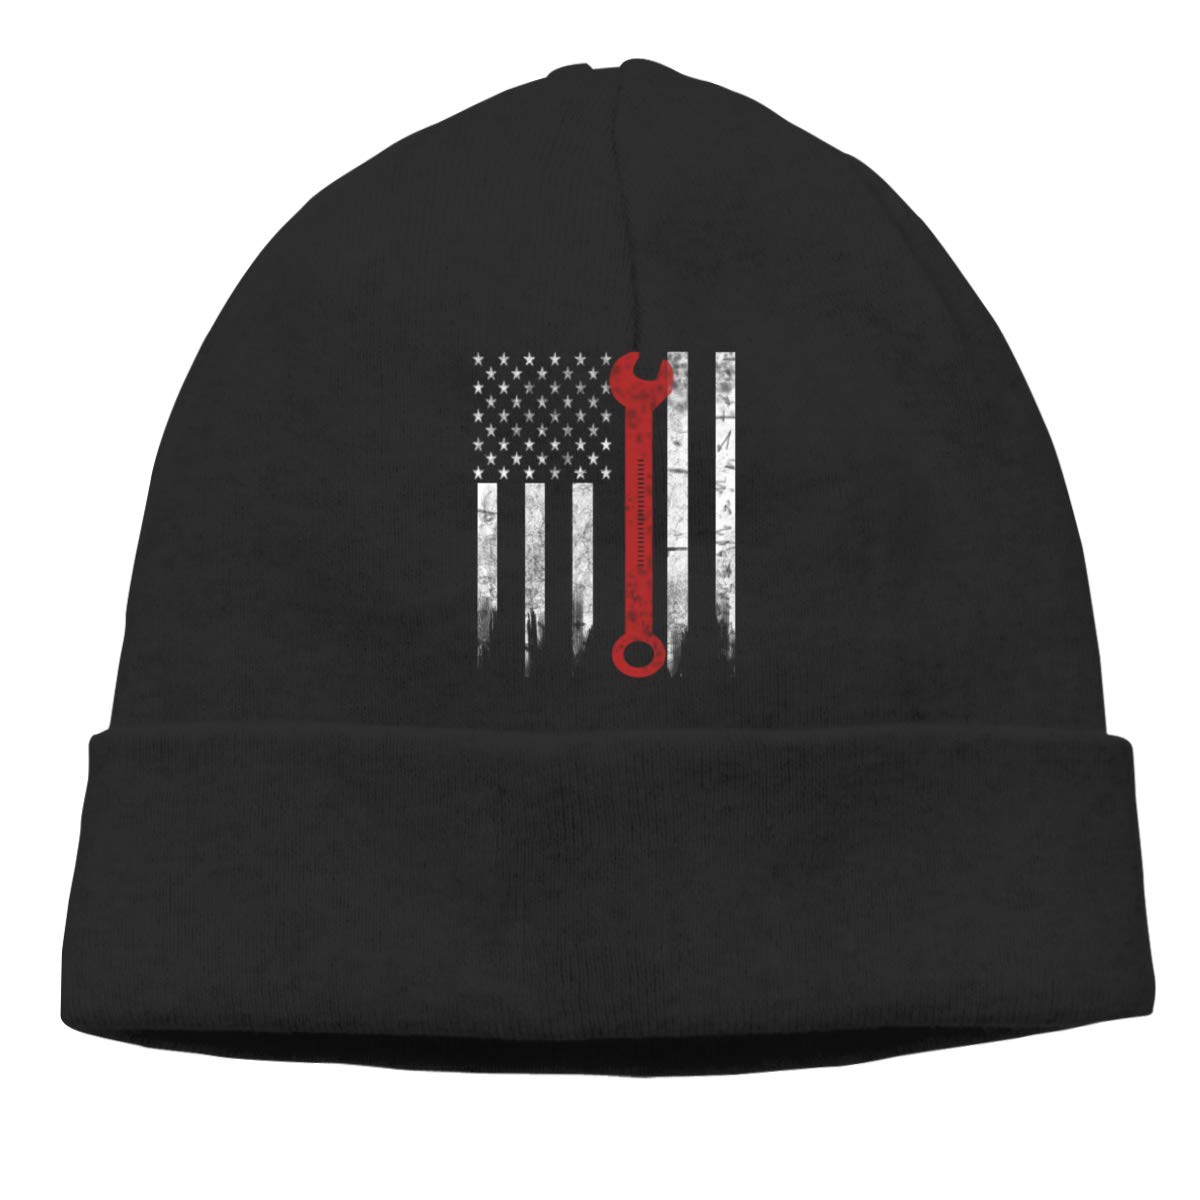 FOECBIR Mechanic USA Flag Thin Beanie Hat Ski Hats Men/&Women Slouchy Soft